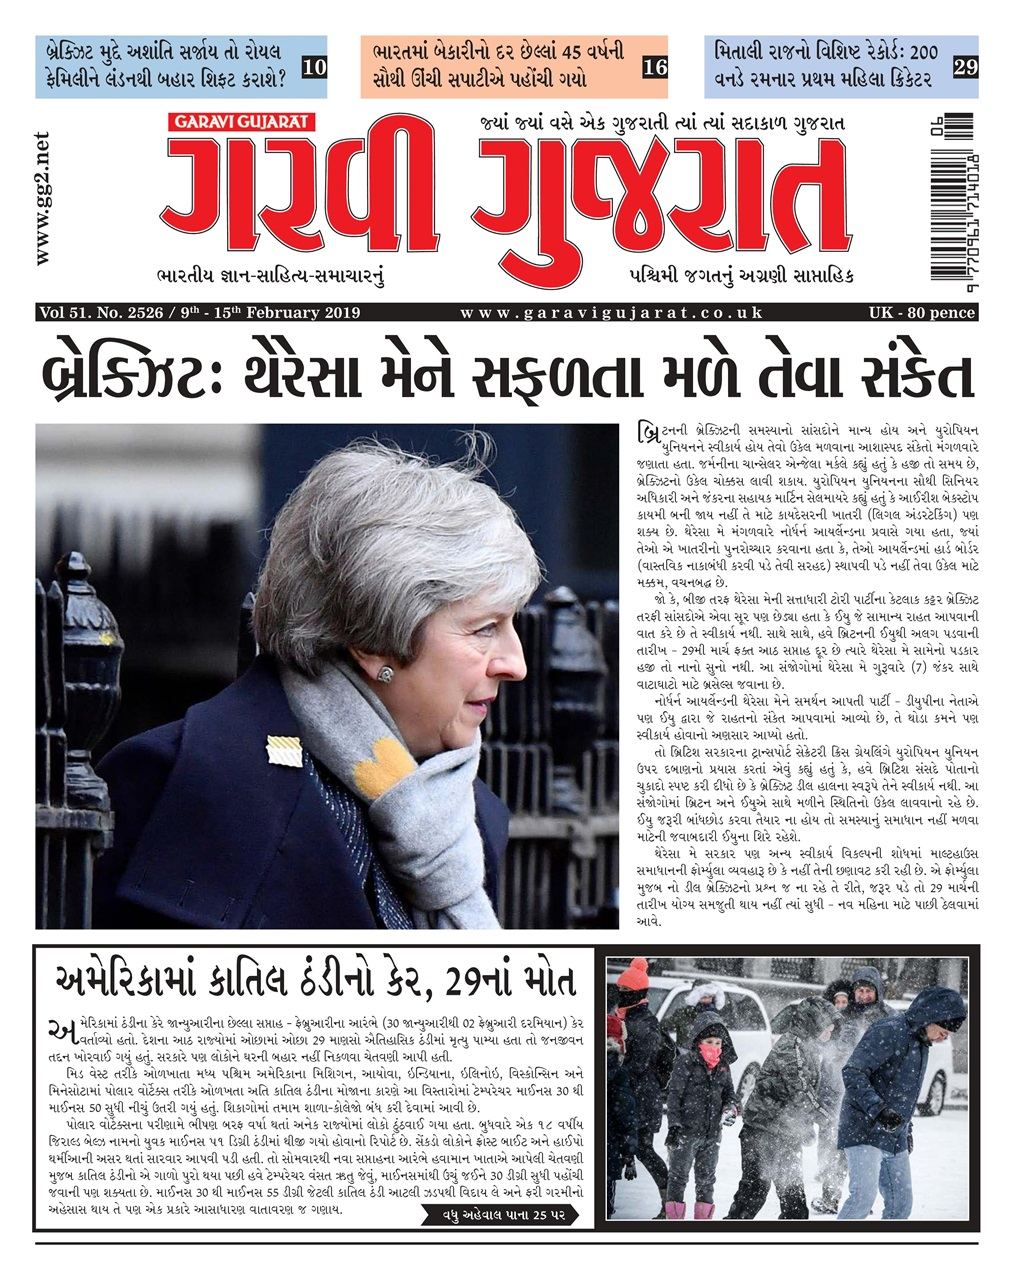 Garavi Gujarat Weekend - a stimulating blend of news, personal finance and  lifestyle features in you inbox every week. ePaper access - the digital  replica ...